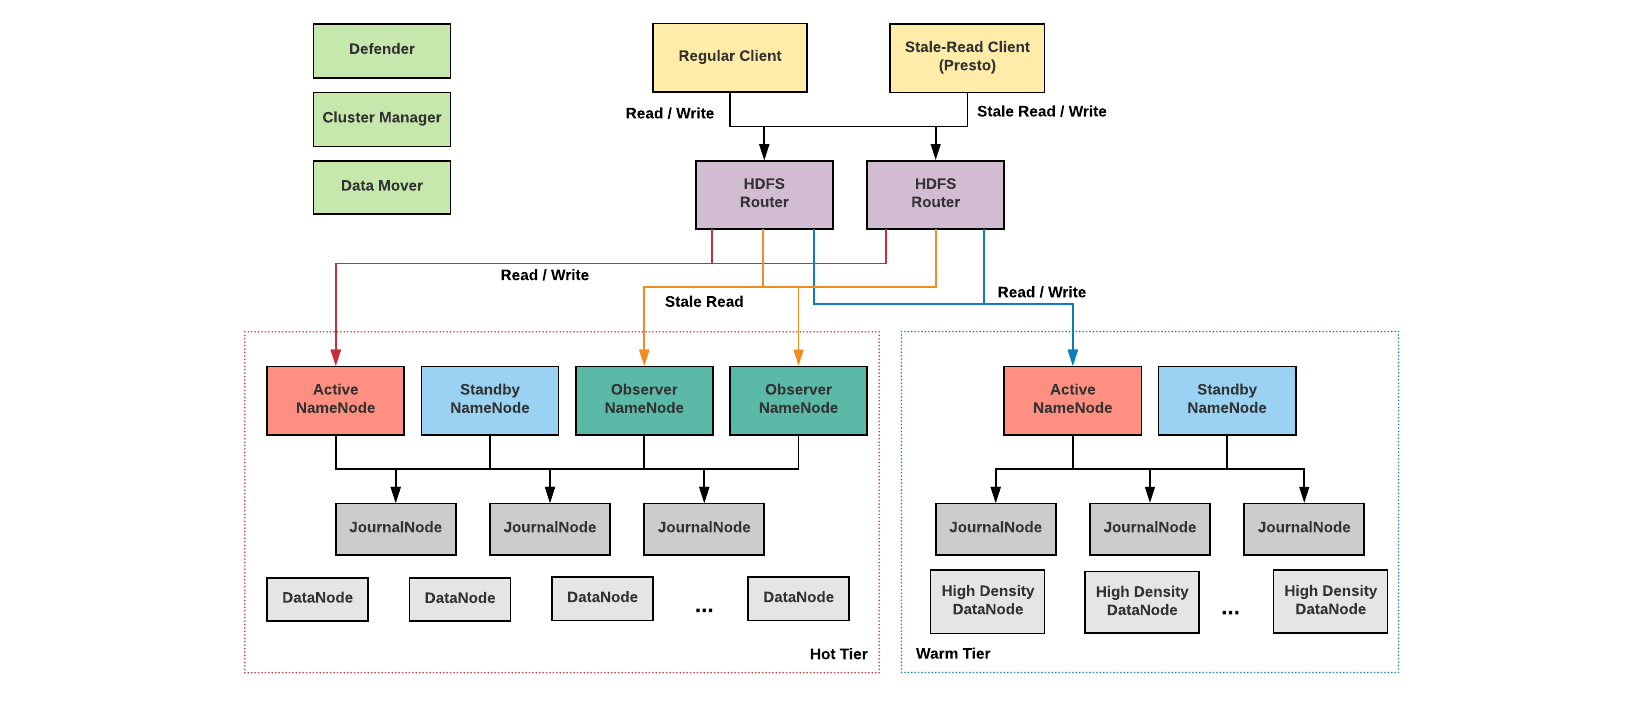 hight resolution of three years ago uber engineering adopted hadoop as the storage hdfs and compute yarn infrastructure for our organization s big data analysis